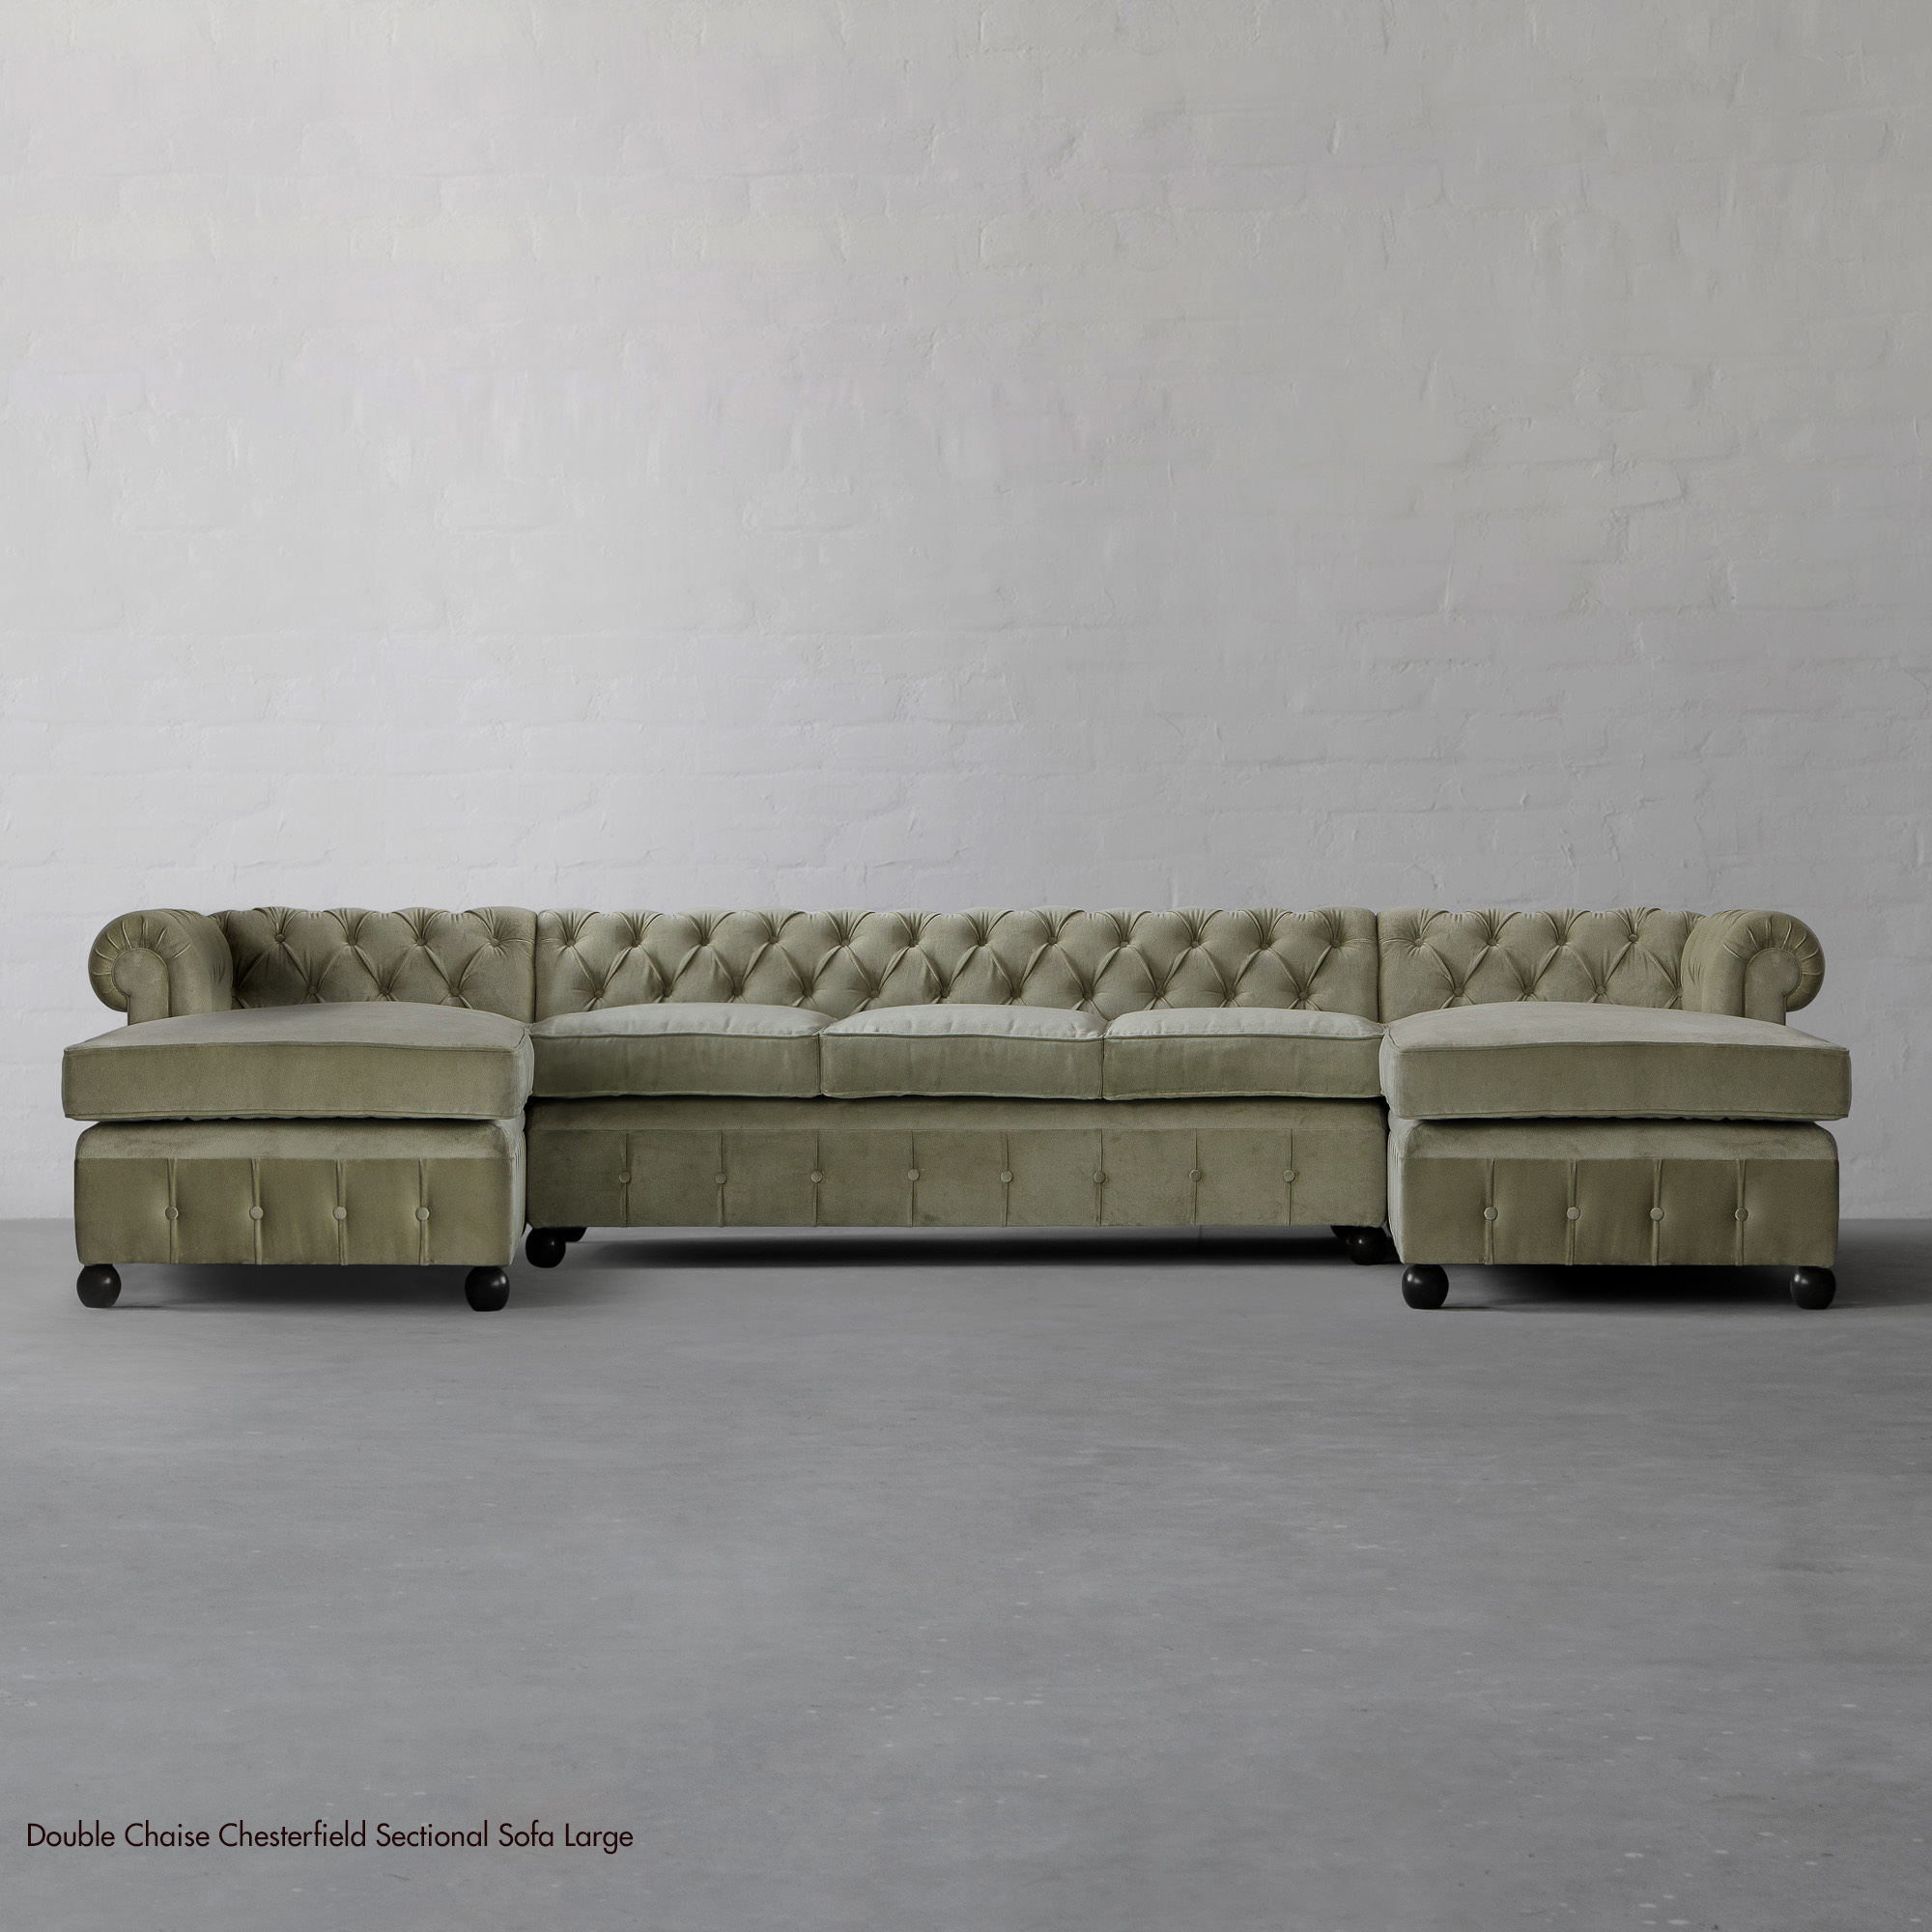 Double Chaise Chesterfield Sectional LARGE